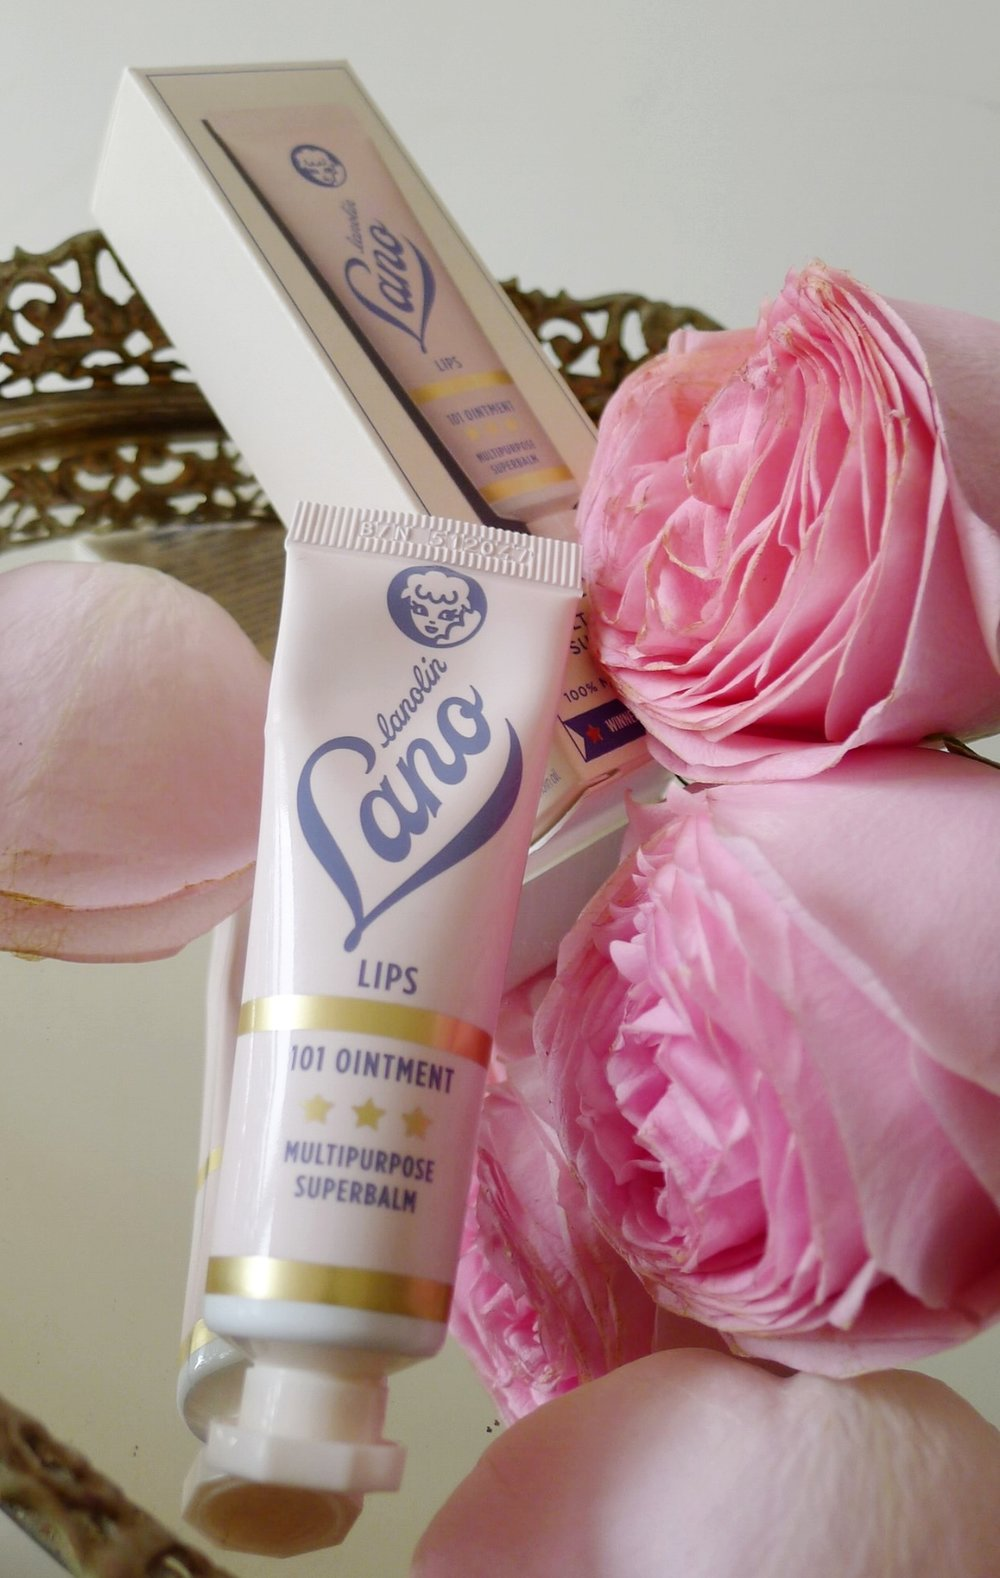 Lanolip's 101 Ointment comes in a cute small pink tube for easy usage.